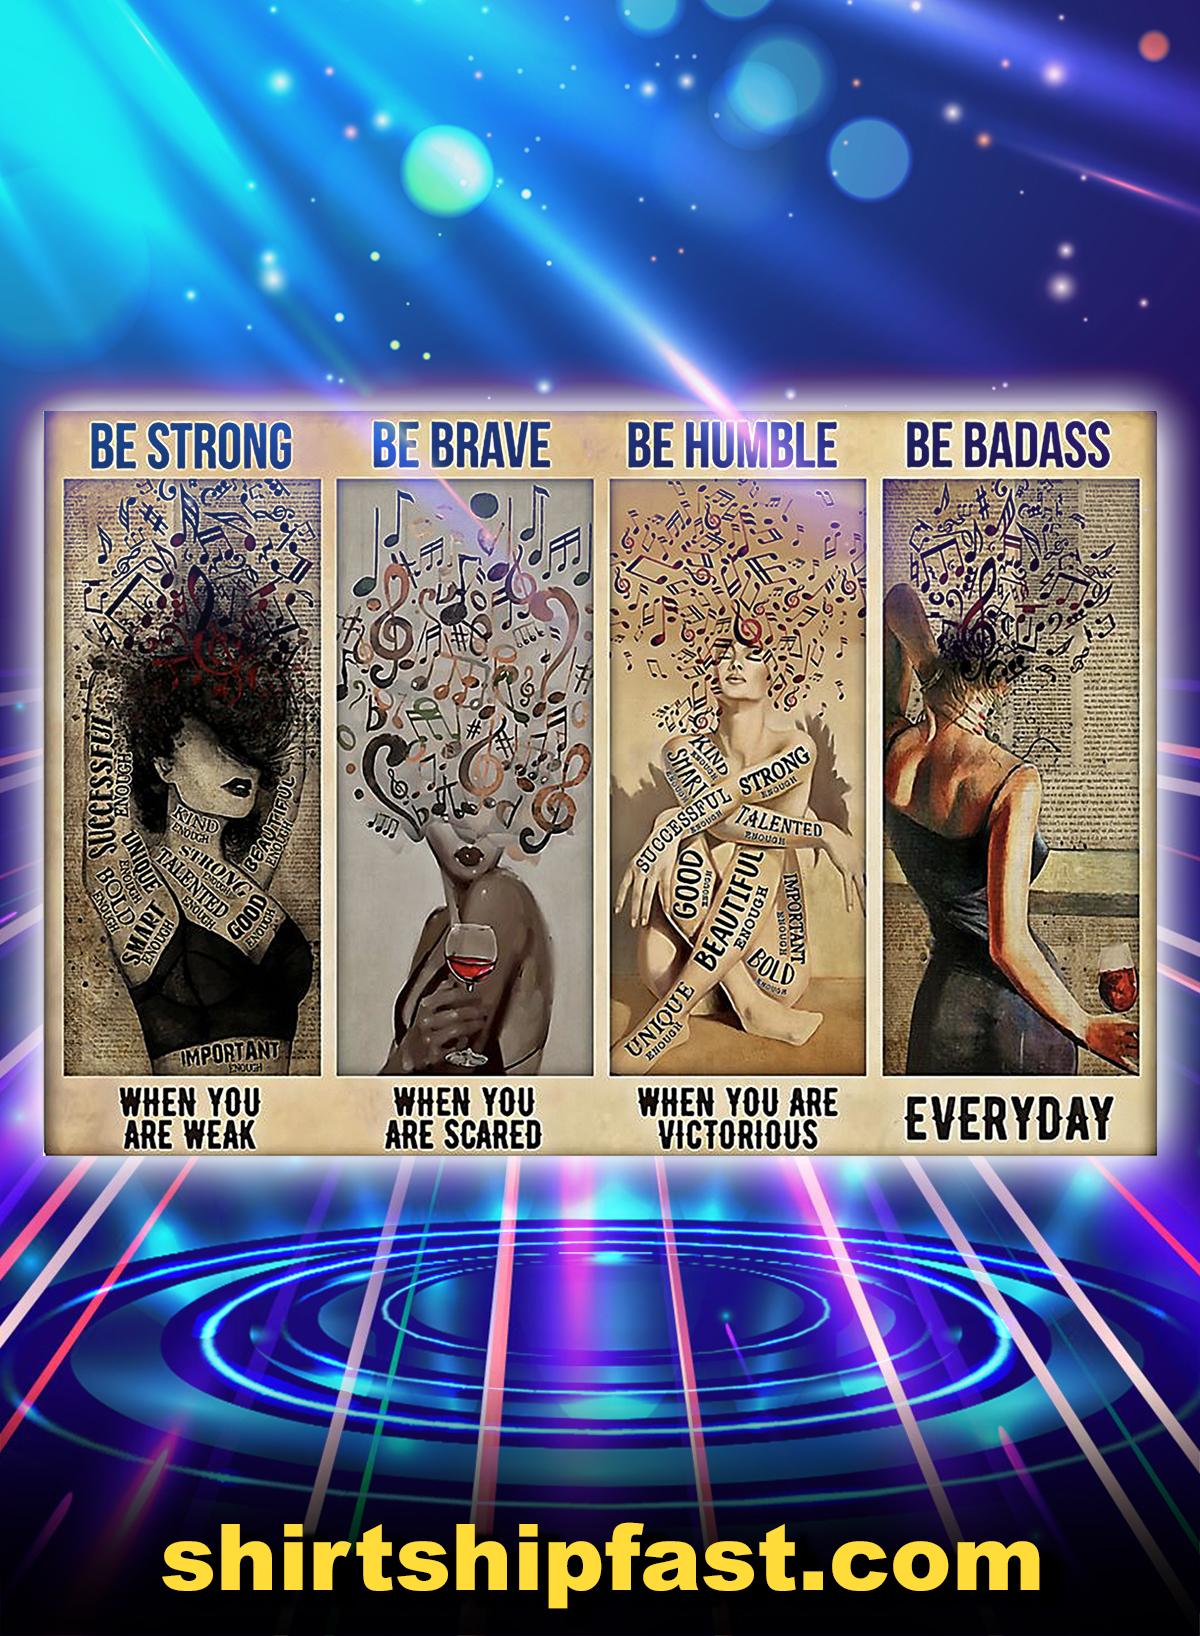 Girl and music be strong be brave poster - A4